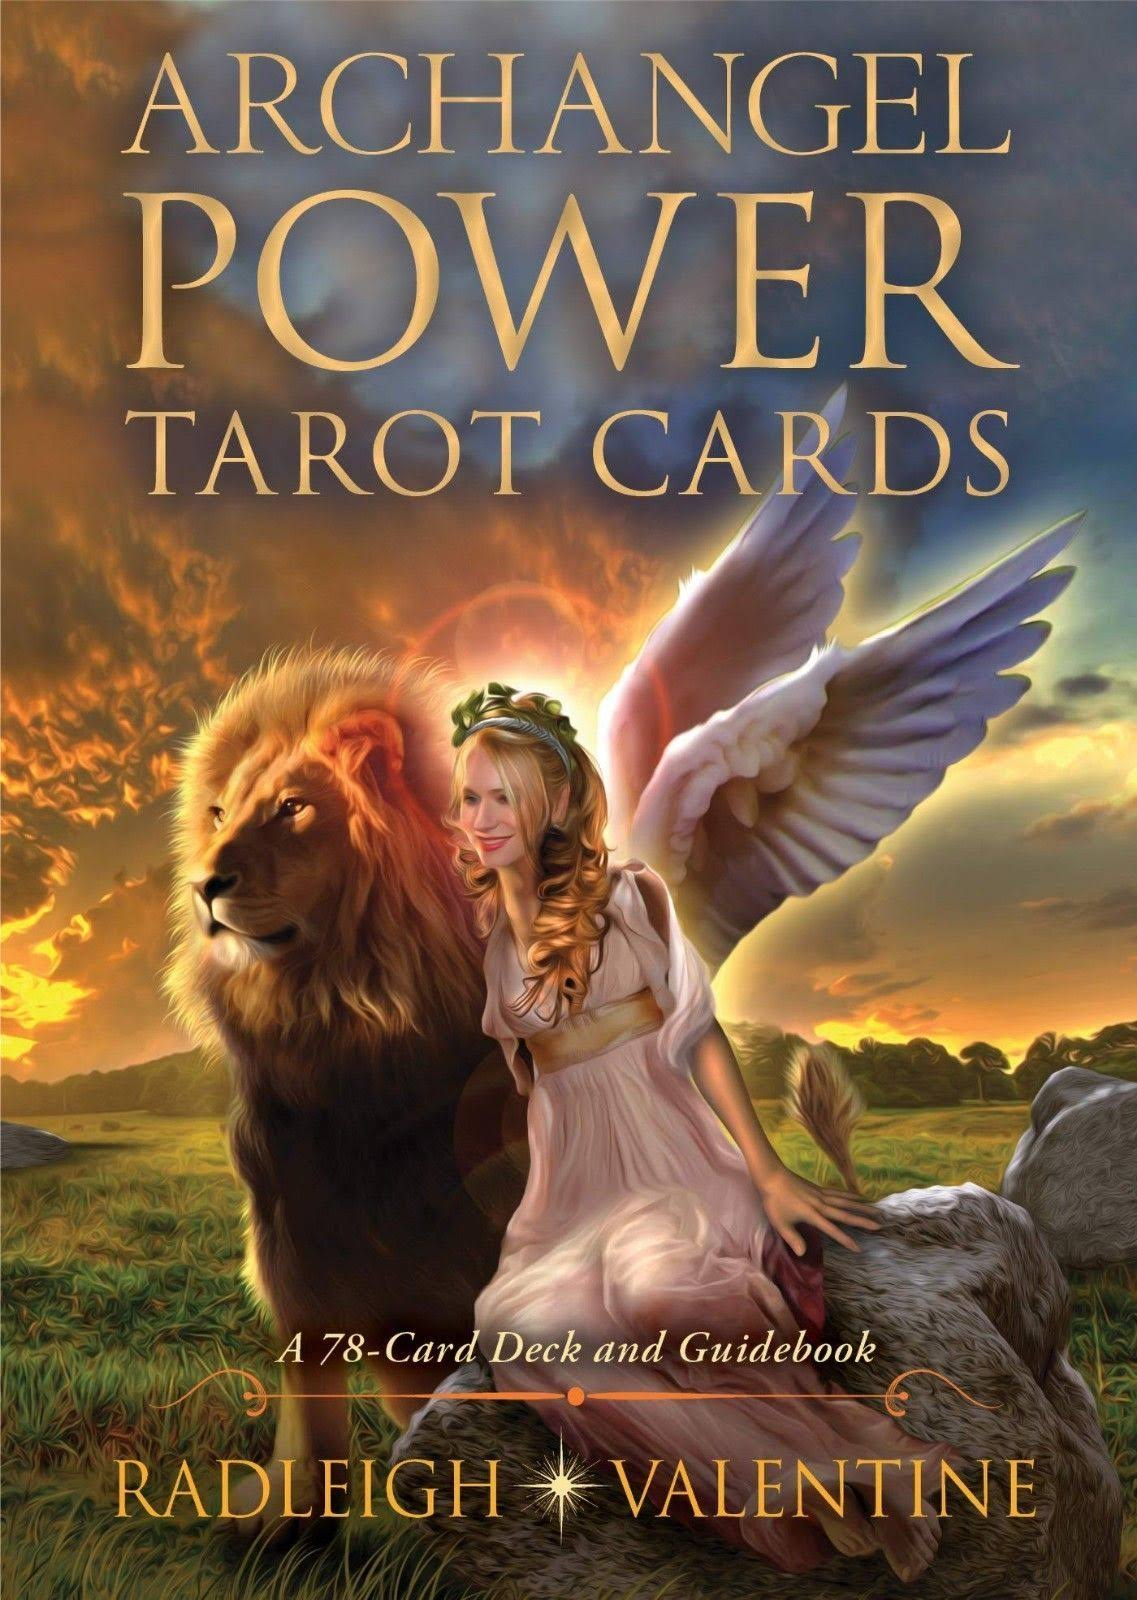 Archangel Power Tarot Cards: A 78-Card Deck and Guidebook - Radleigh Valentine